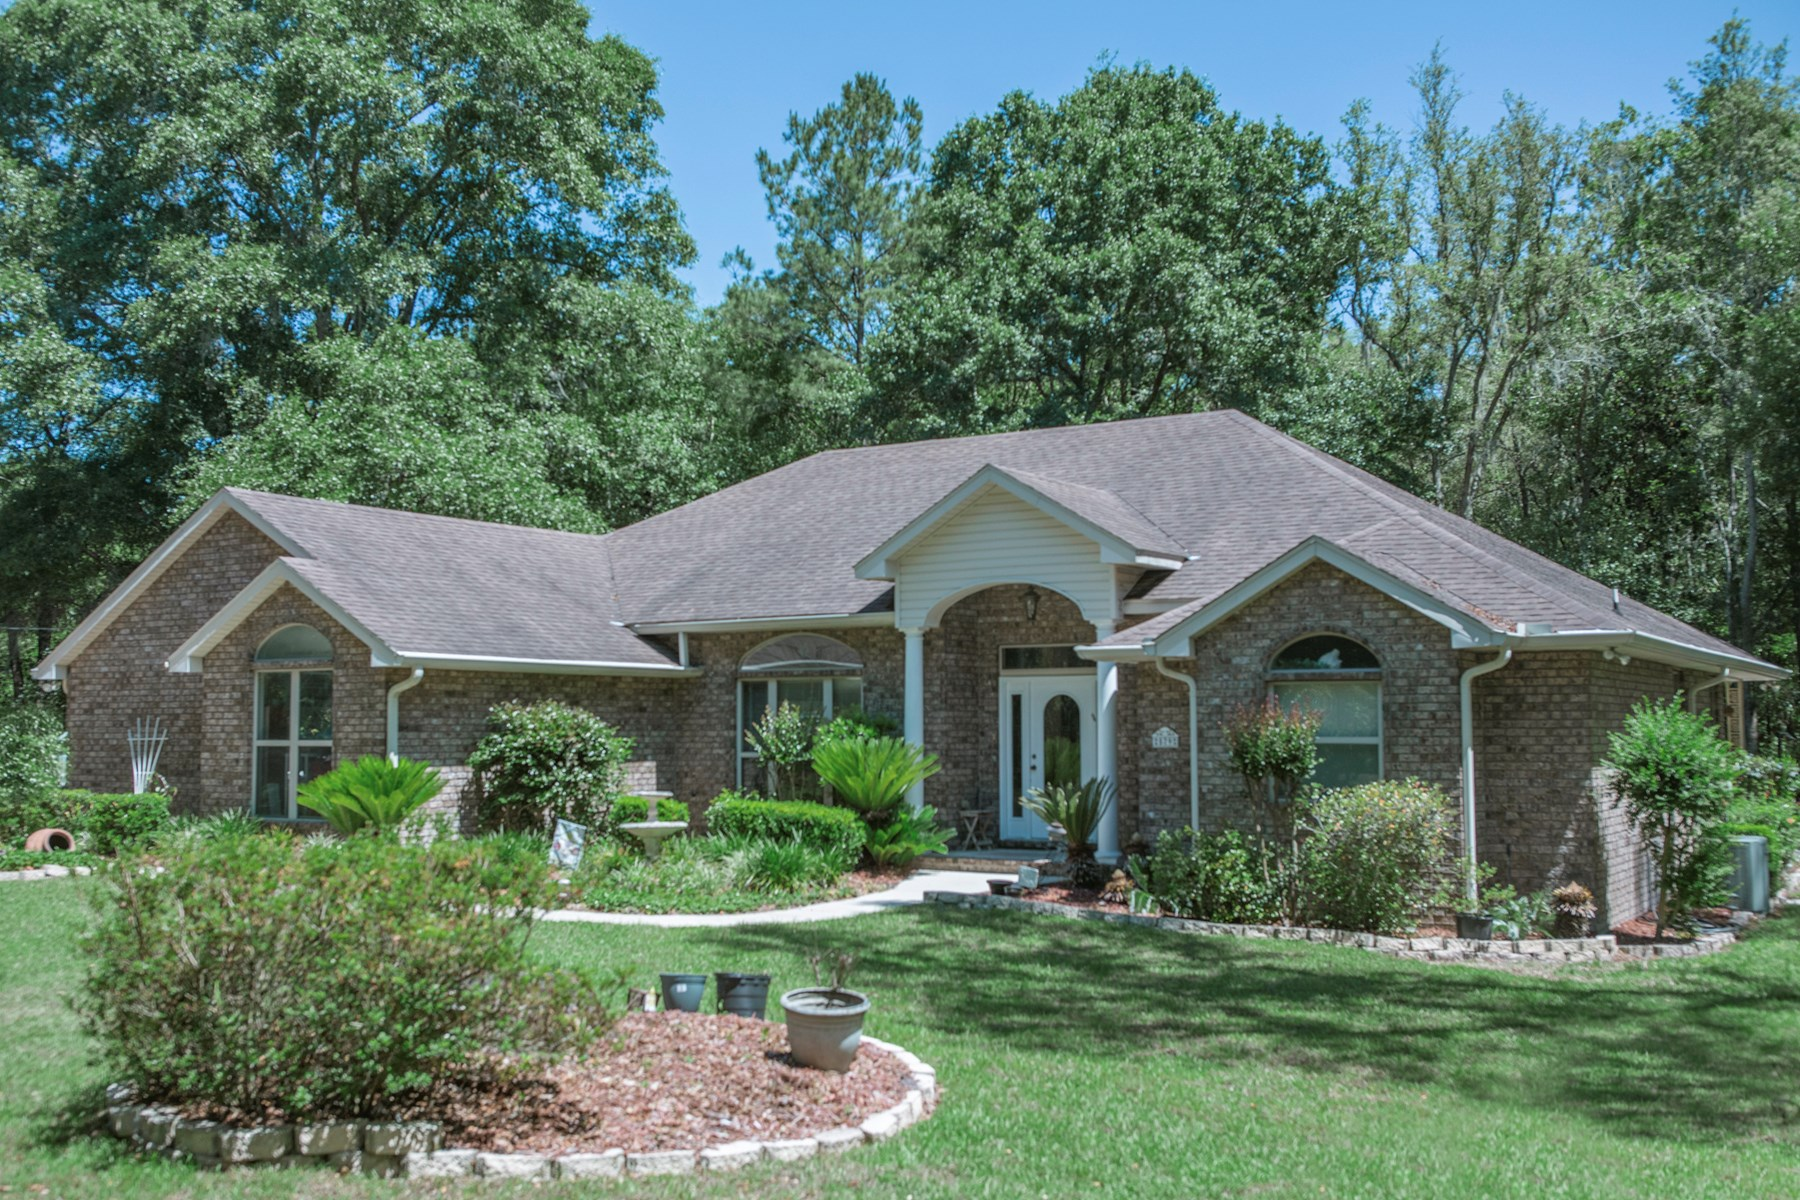 North Florida, 12.27 Acres with woods, brick home and creek